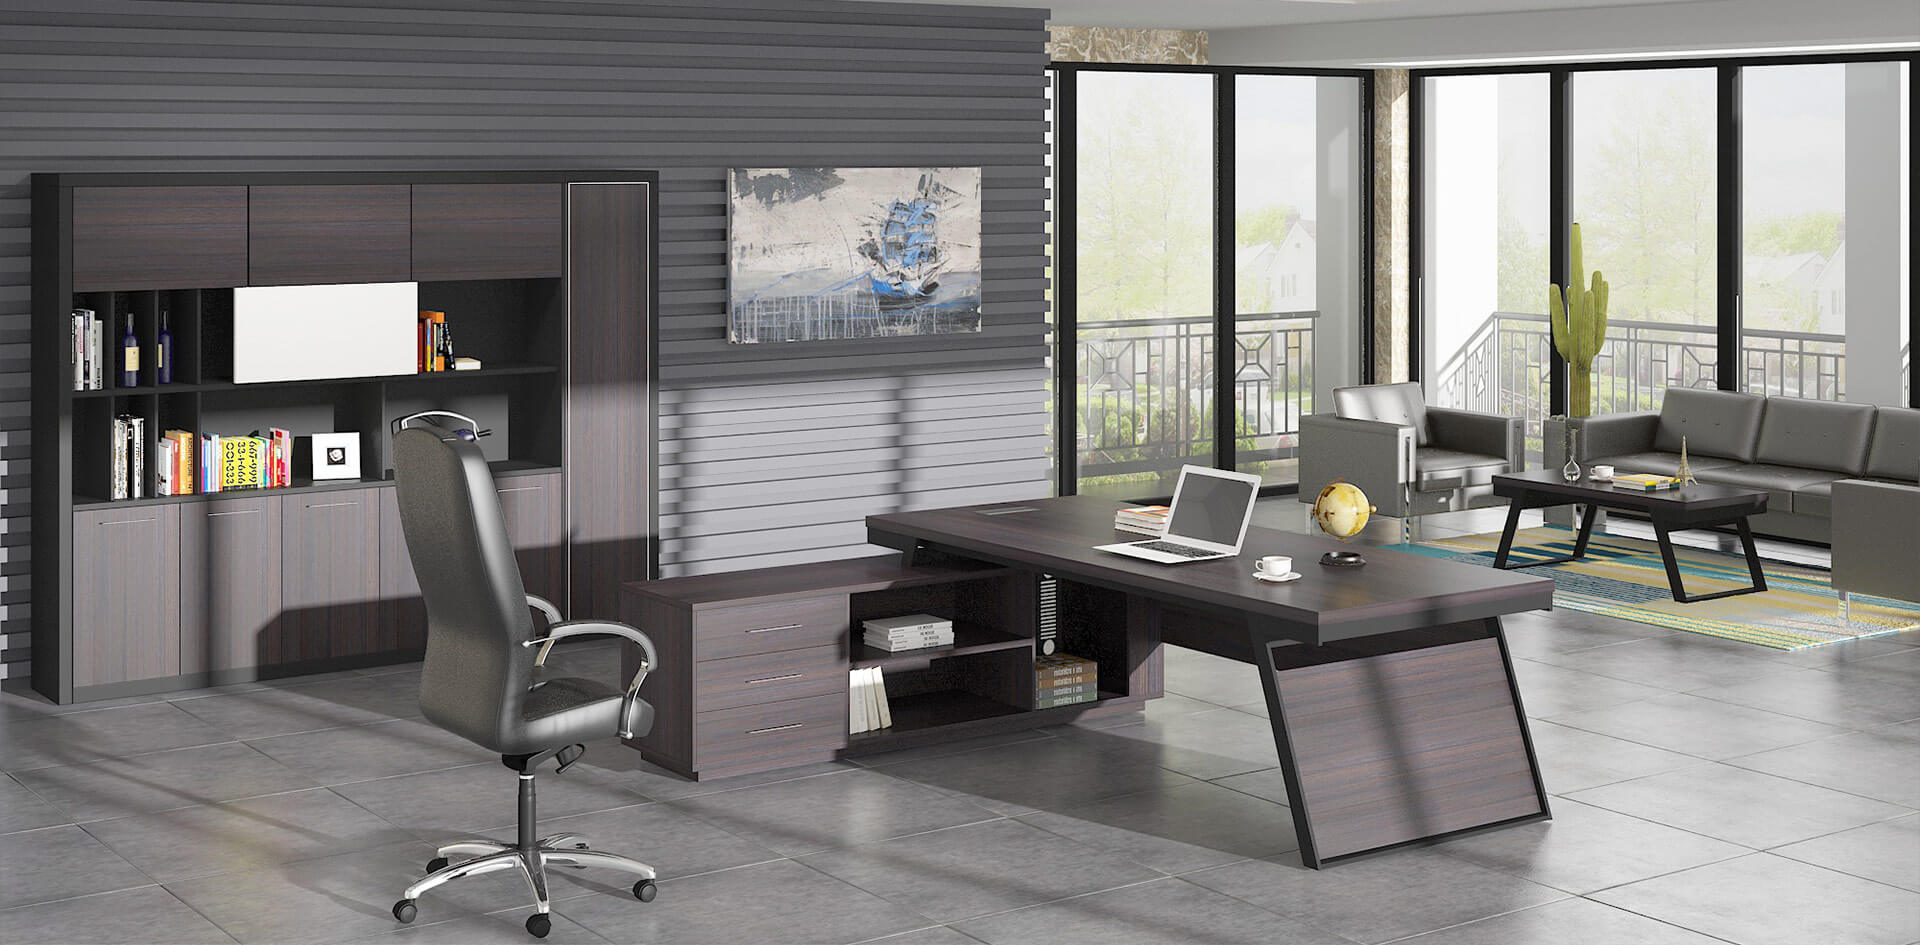 Common Office Furniture Buying Mistakes